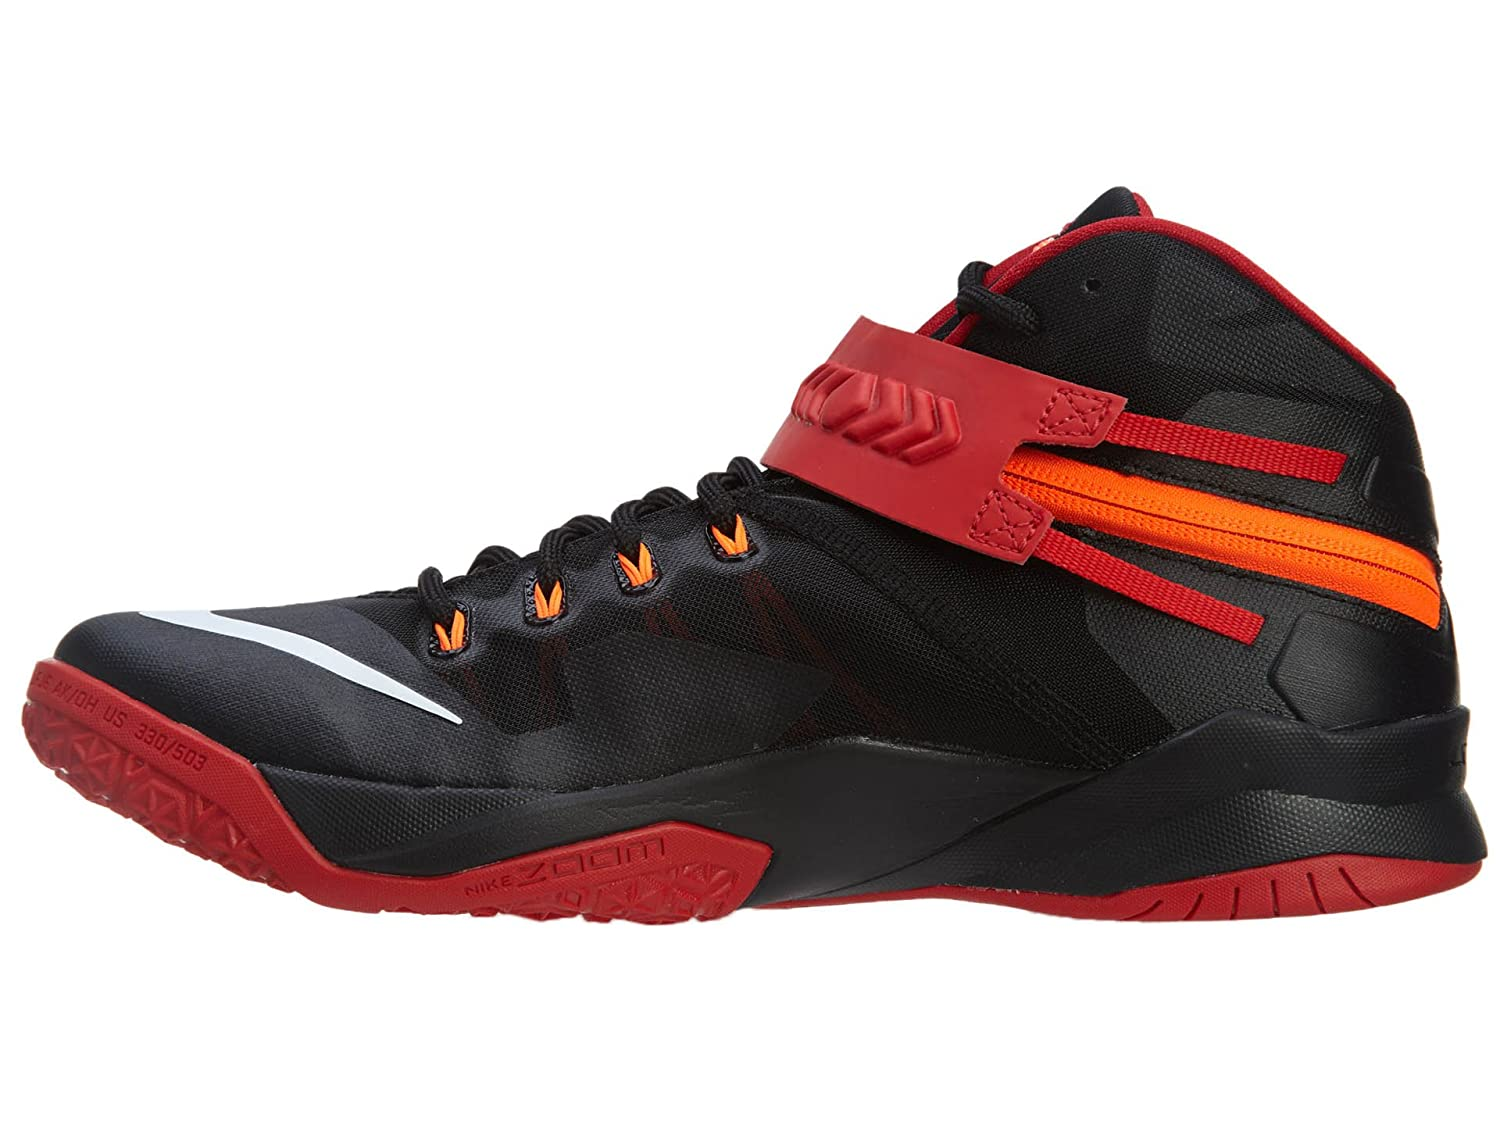 new style 9734a d8c5d Nike Men's Zoom Soldier VIII Basketball Shoe